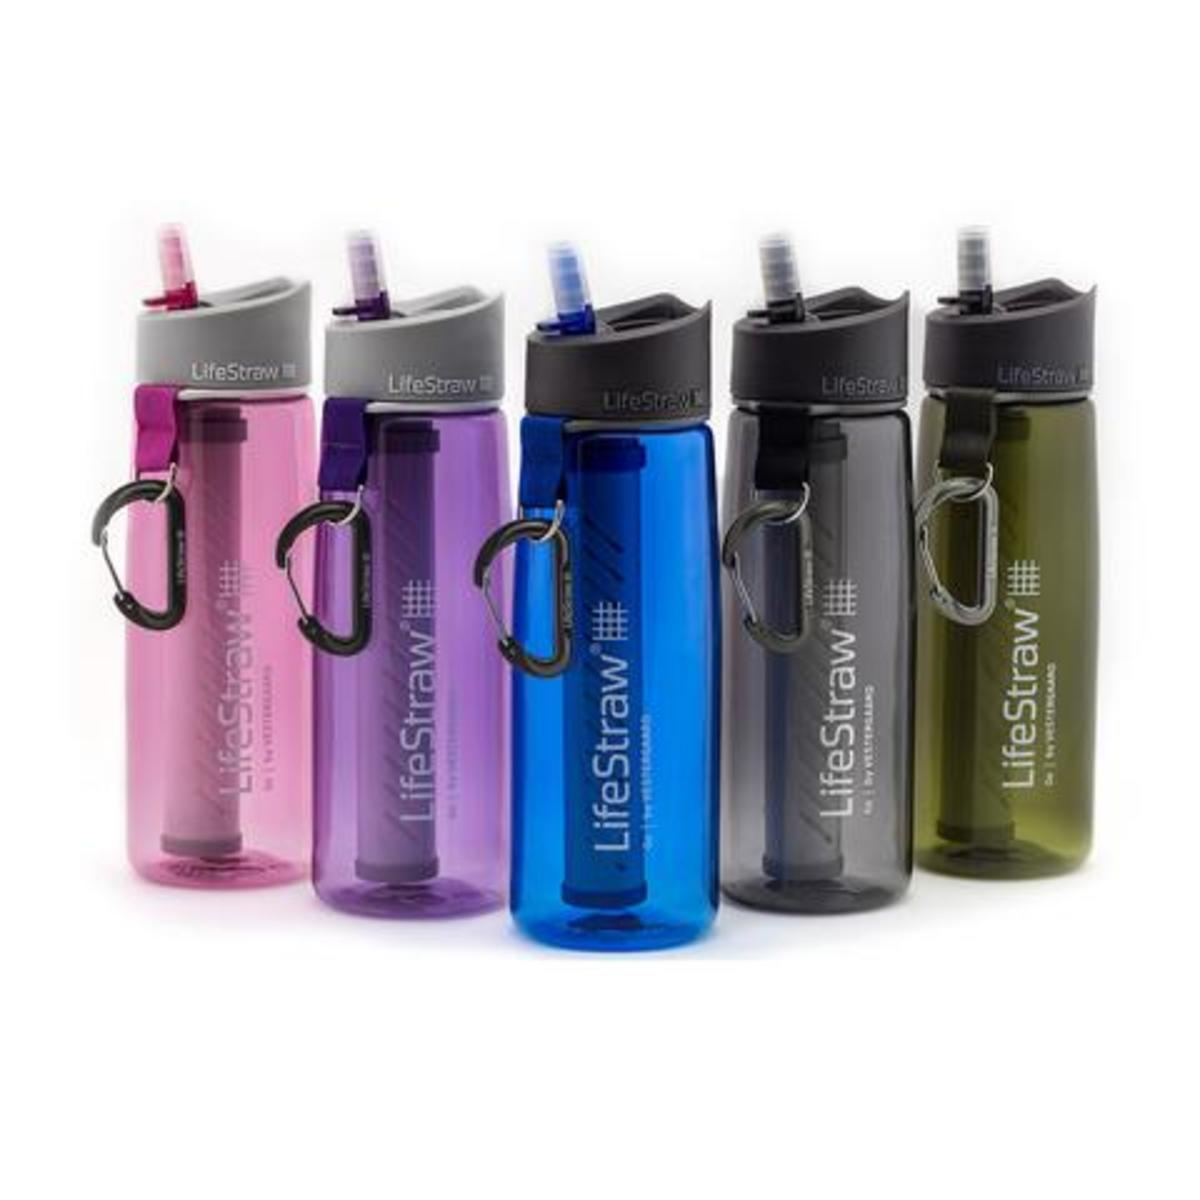 Life Straw Water Bottles are great in hiking emergencies.